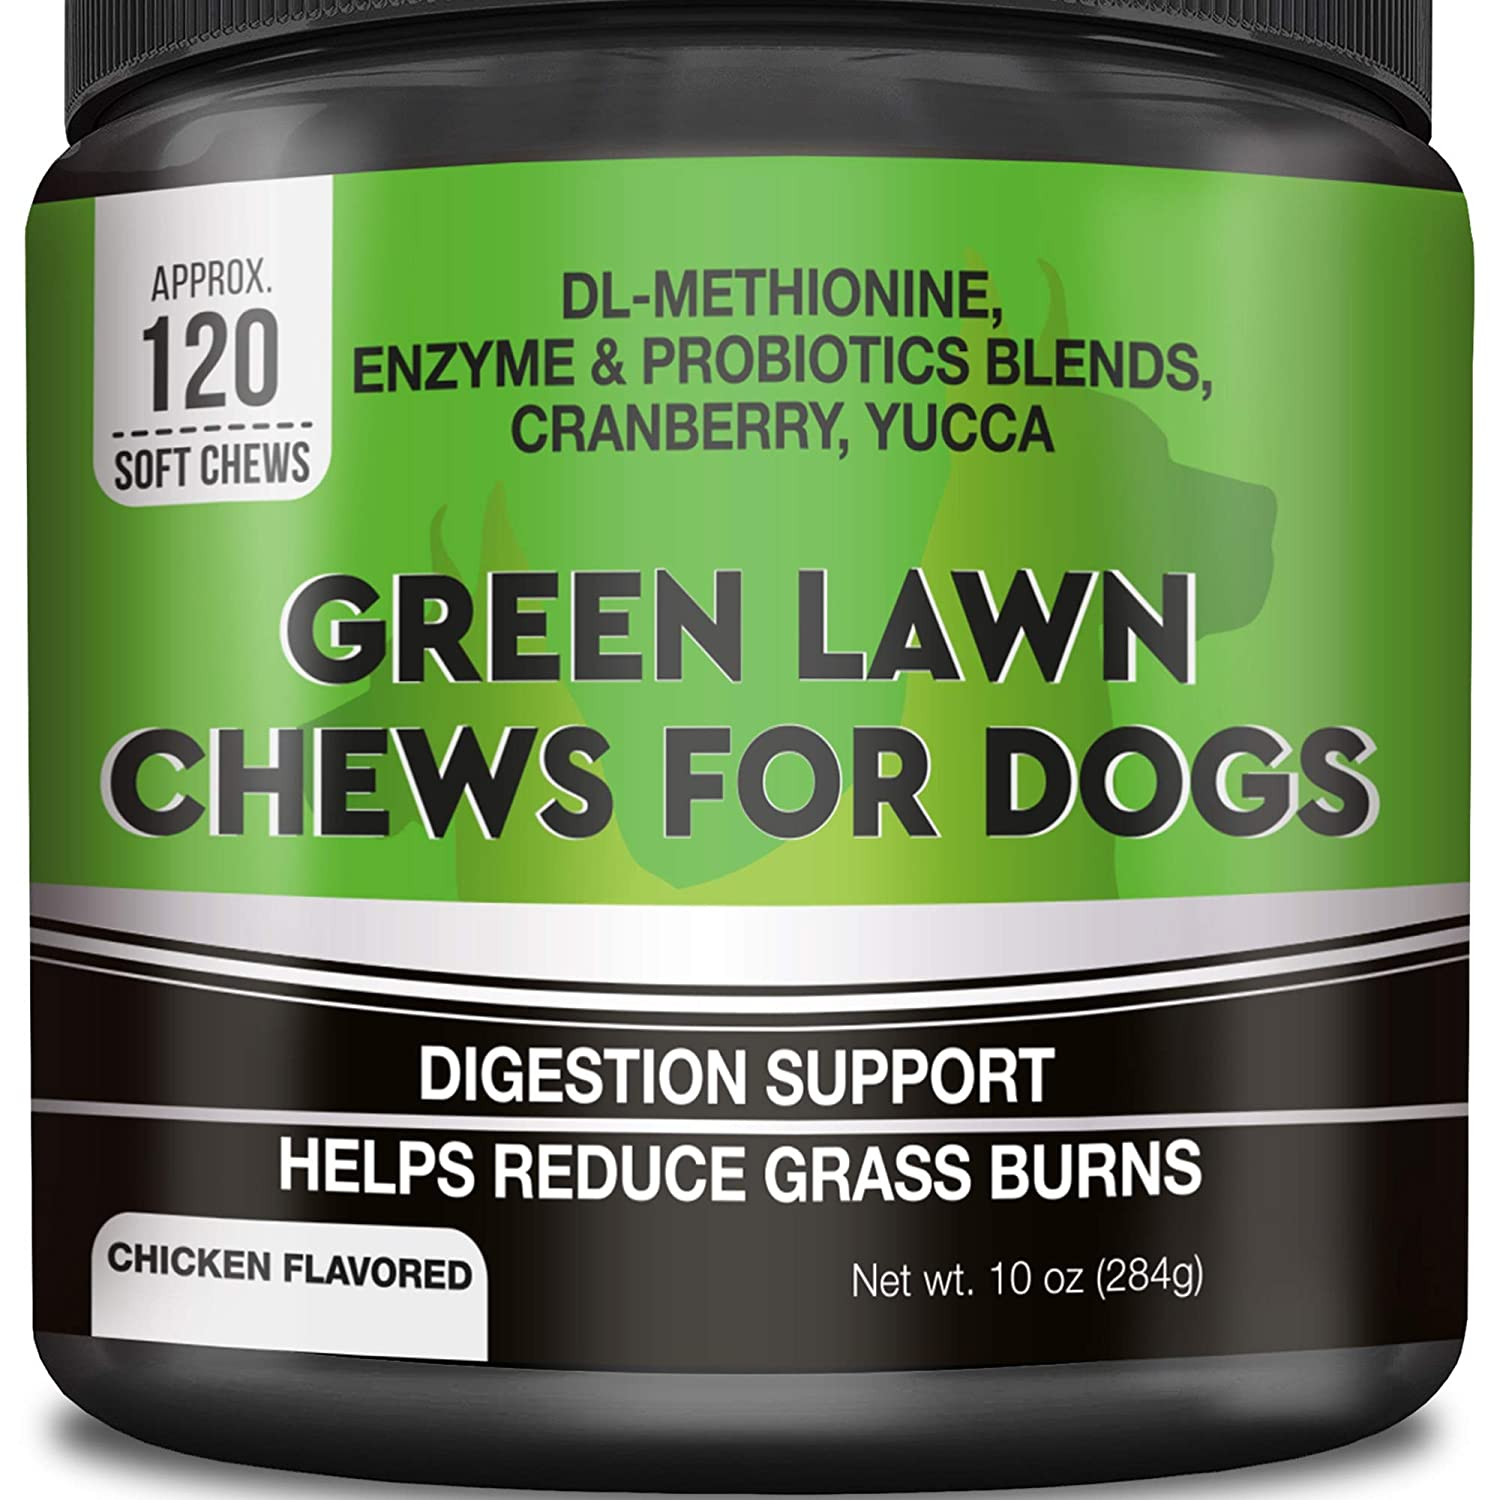 GOODGROWLIES Grass Saver for Dogs - Dog Pee Lawn Repair Treats - Grass Burn Spots Caused by Dog Urine - Grass Saver Rocks with Probiotics + Digestive Enzymes, Cranberry - Made in USA - 120 Soft Chews